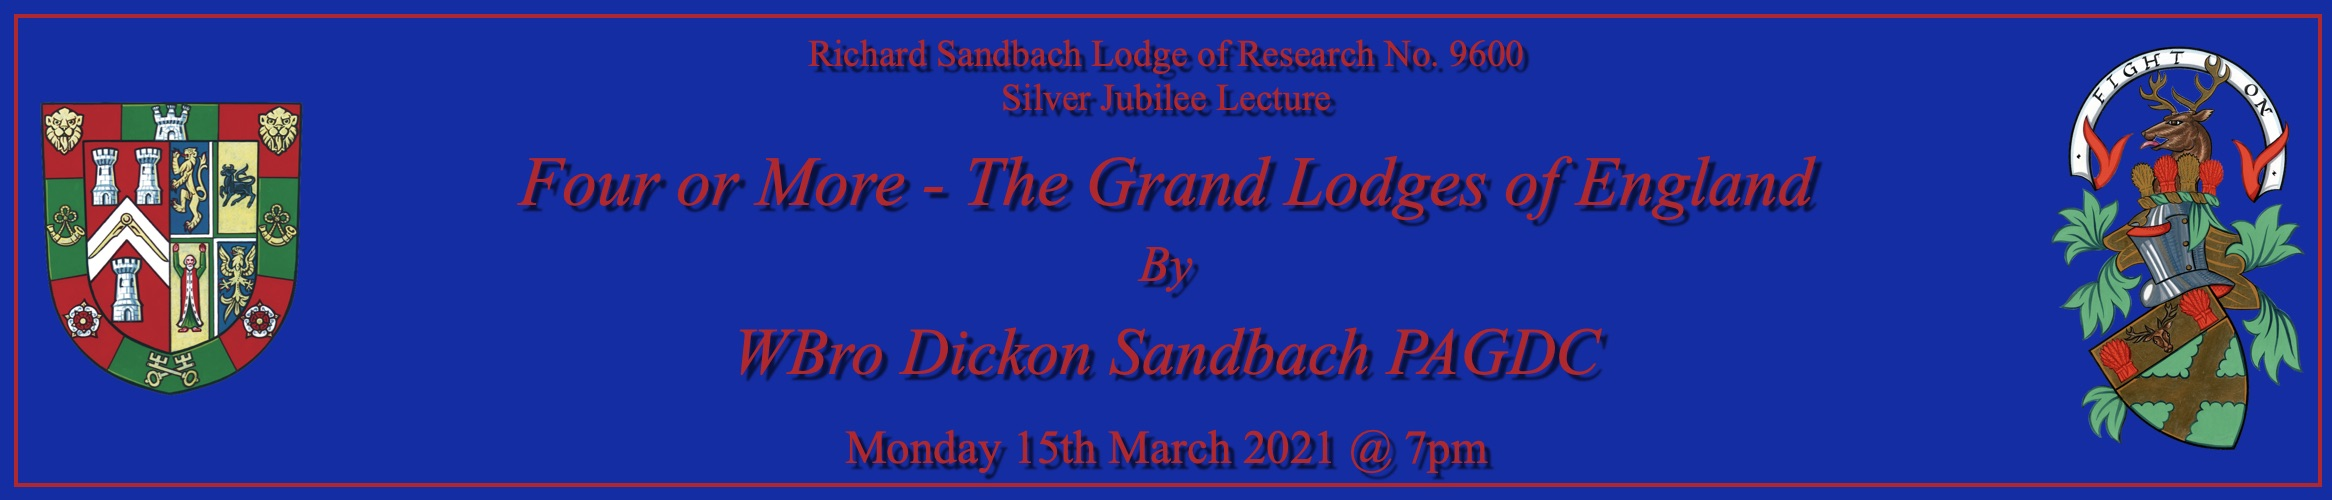 Richard Sandbach Lodge of Research Silver Jubilee Lecture: Four or More - The Grand Lodges of England